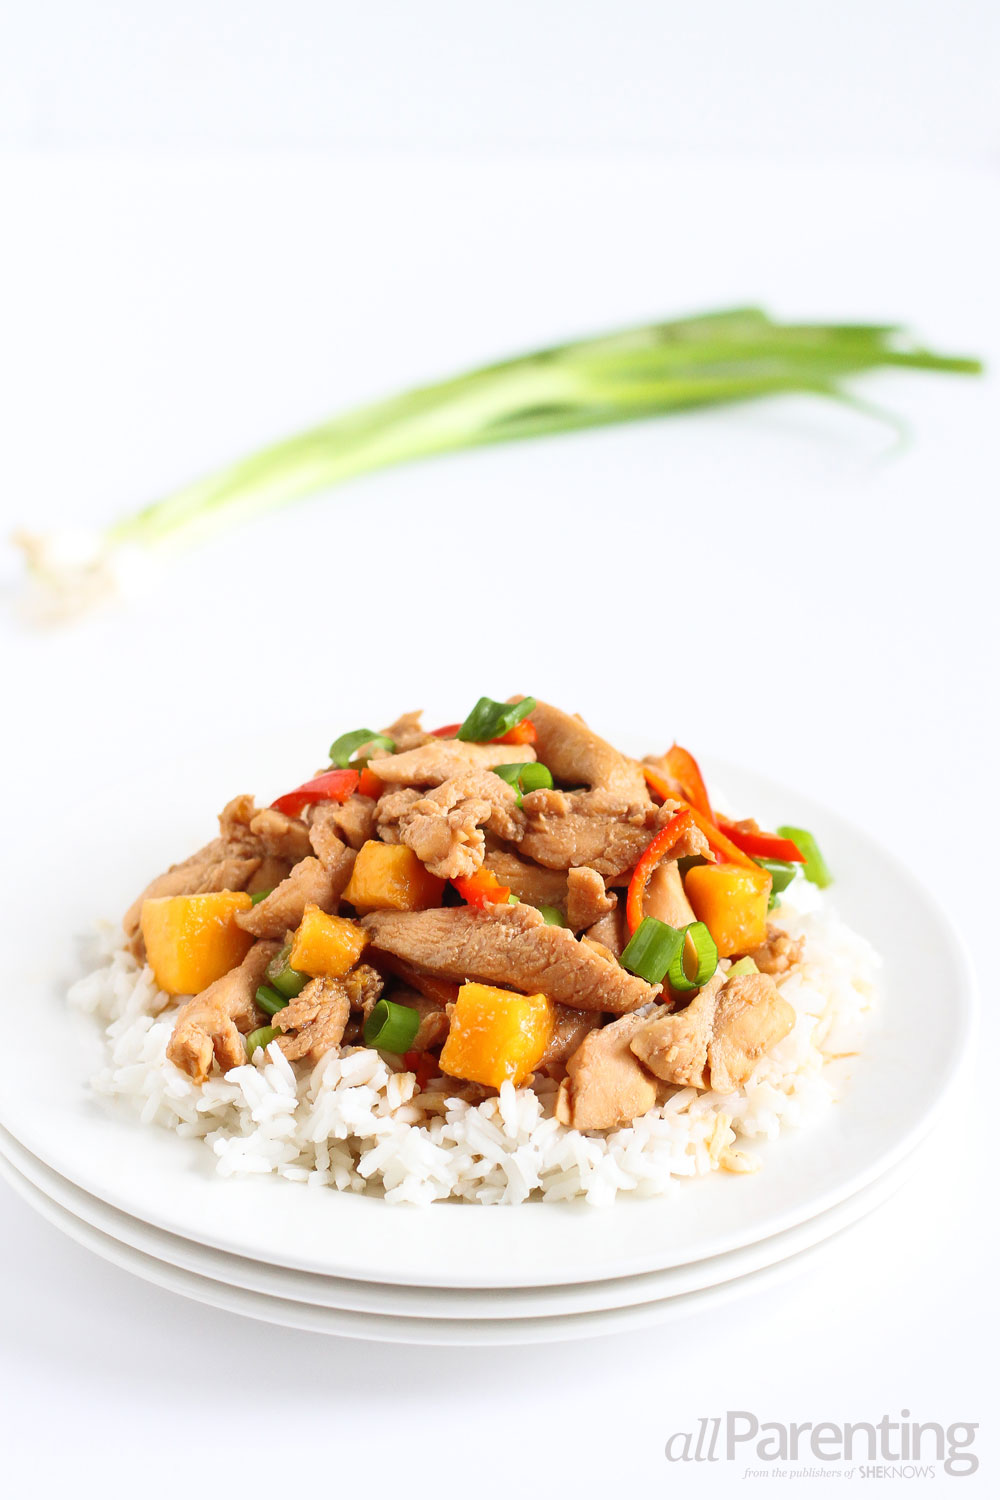 allParenting Chicken and mango stir-fry